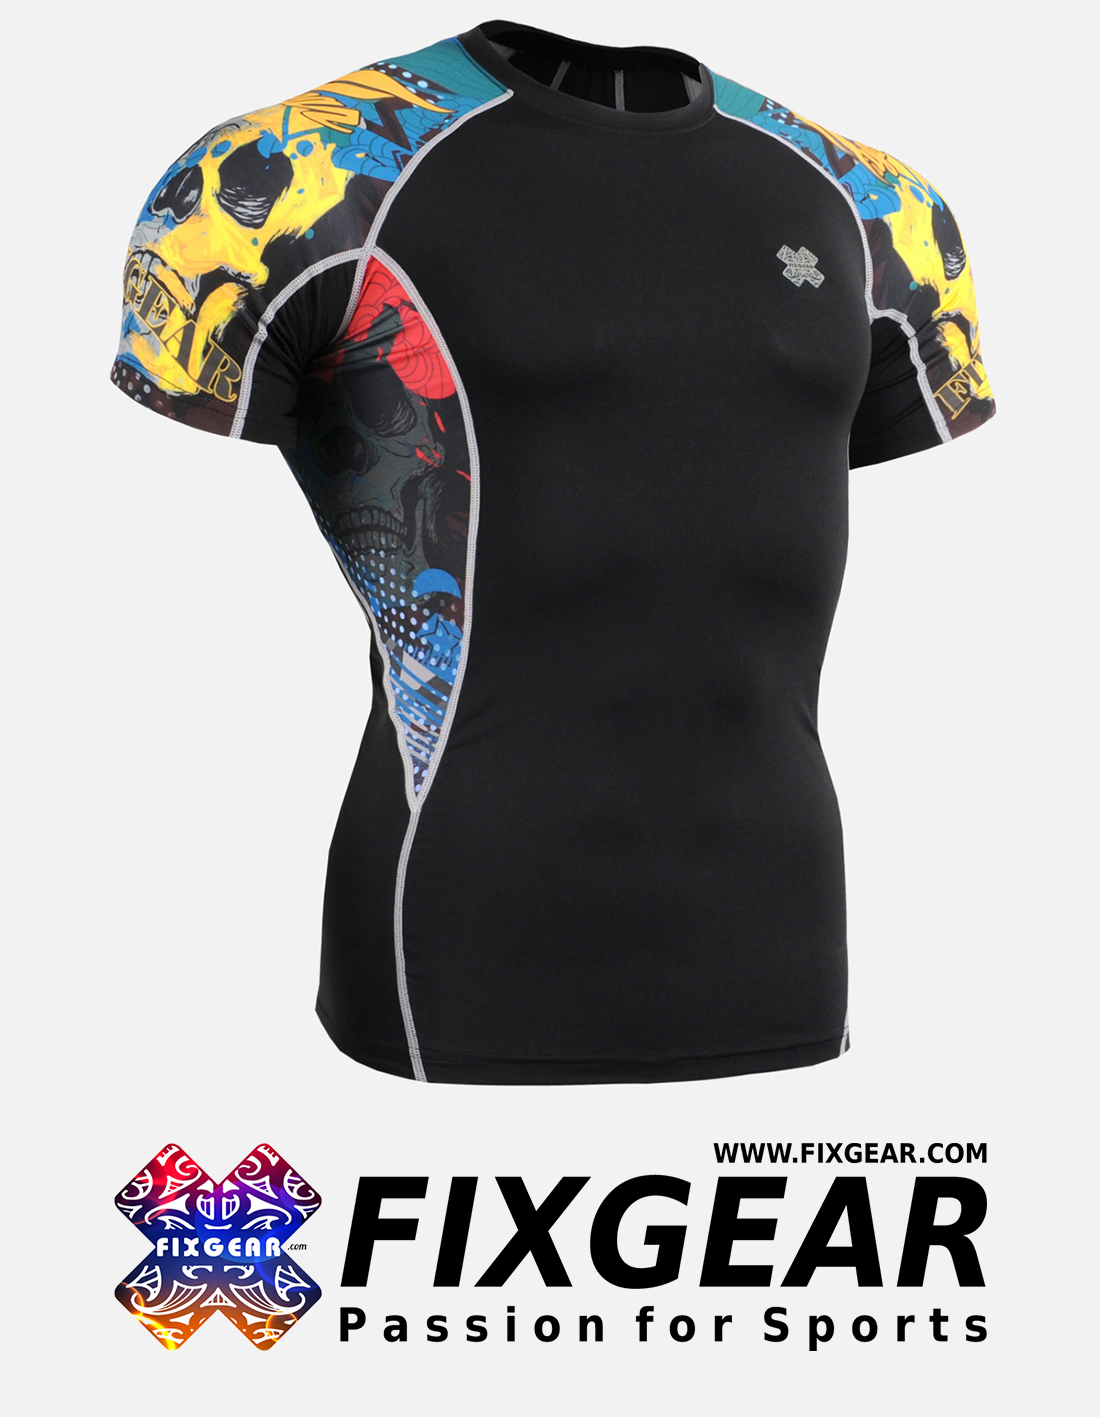 FIXGEAR C2S-B46 Compression Base Layer Shirt Short Sleeve